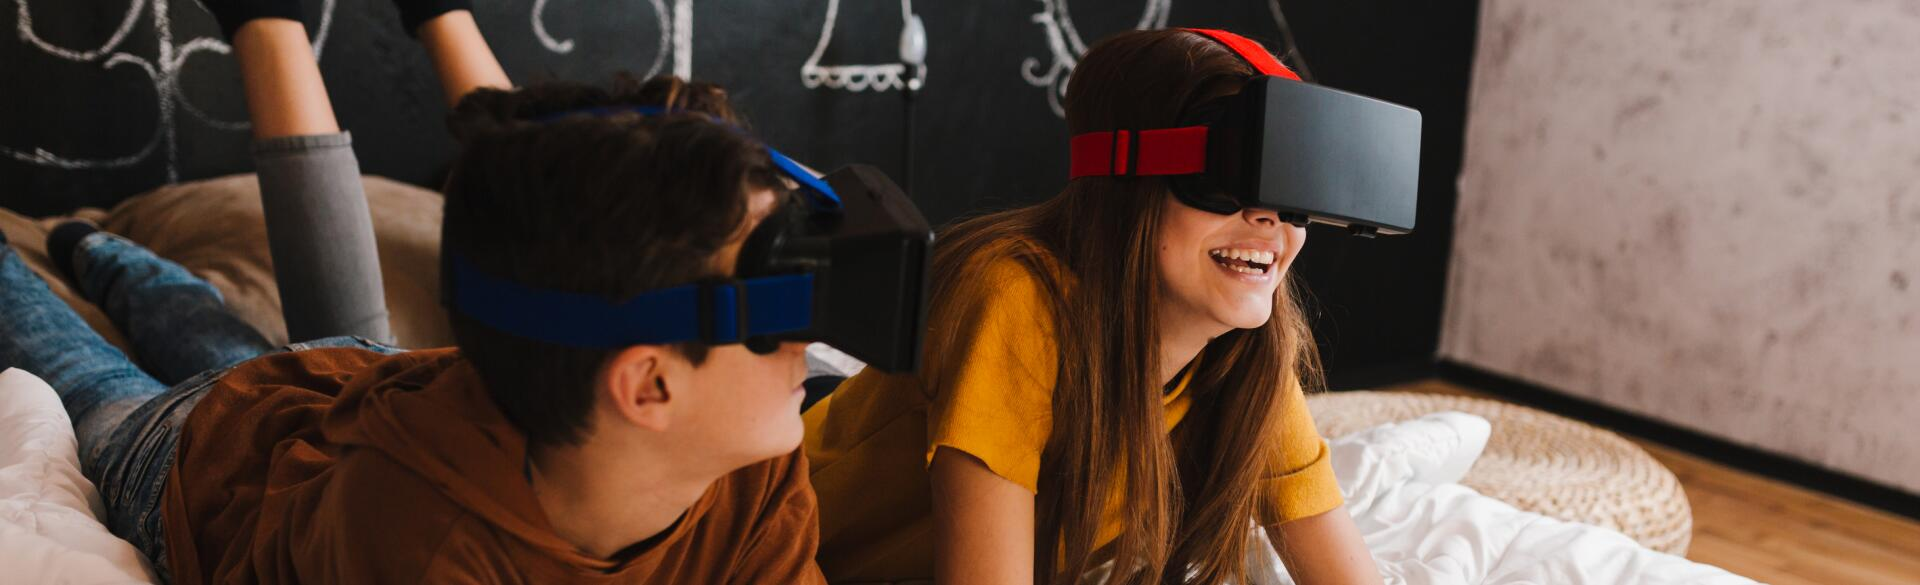 Teenagers With Vr Glasses Having Fun